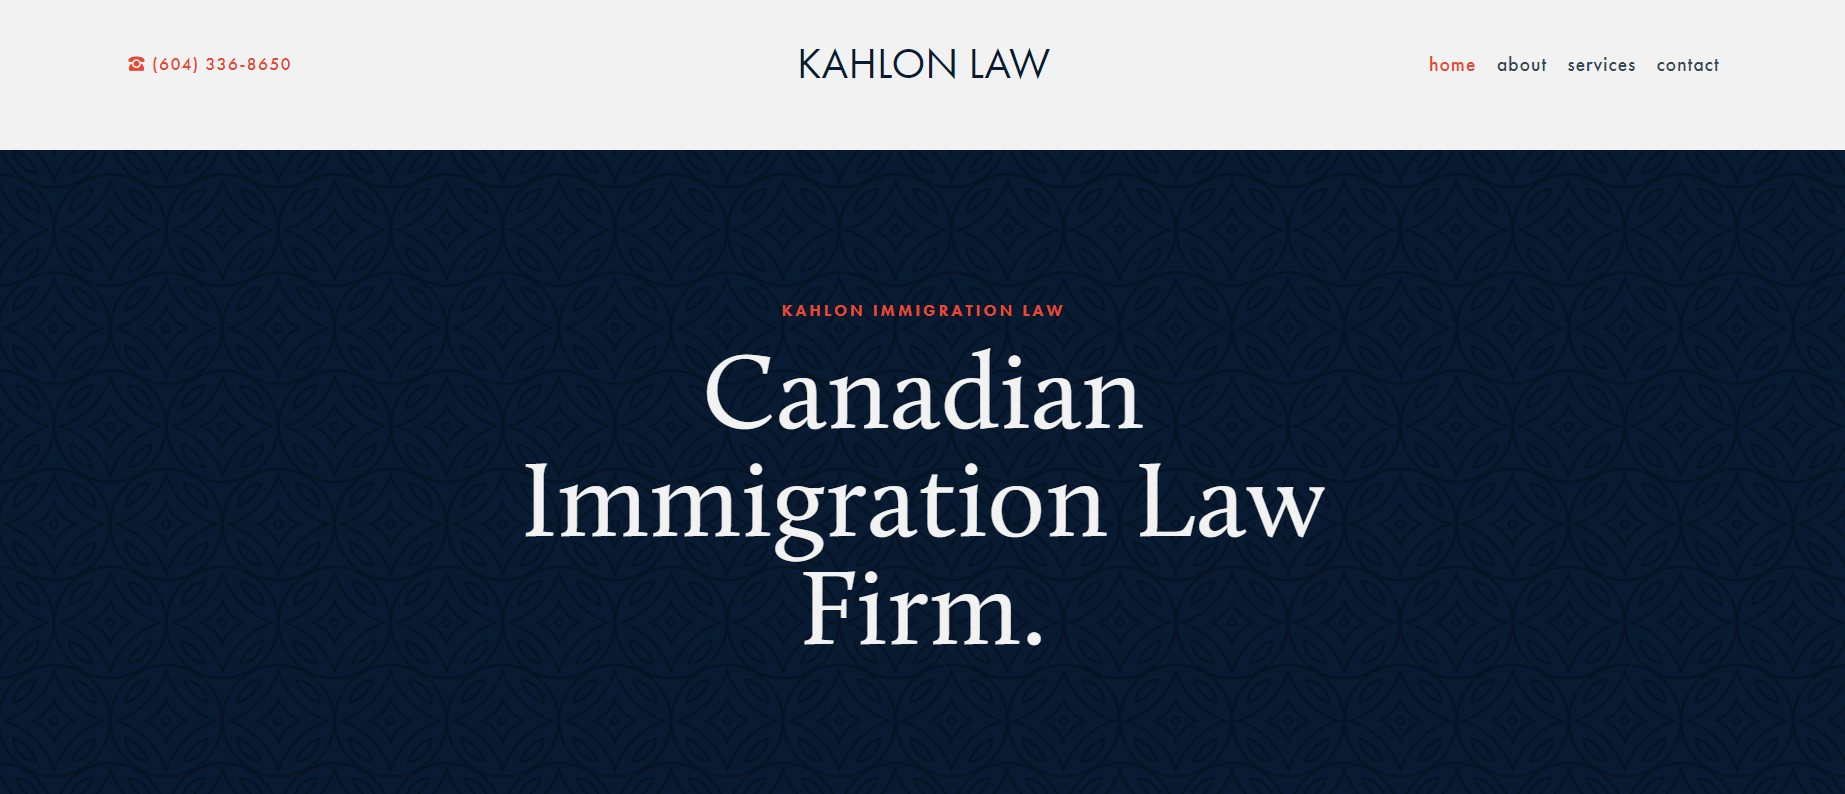 kahlon law immigration attorney in vancouver